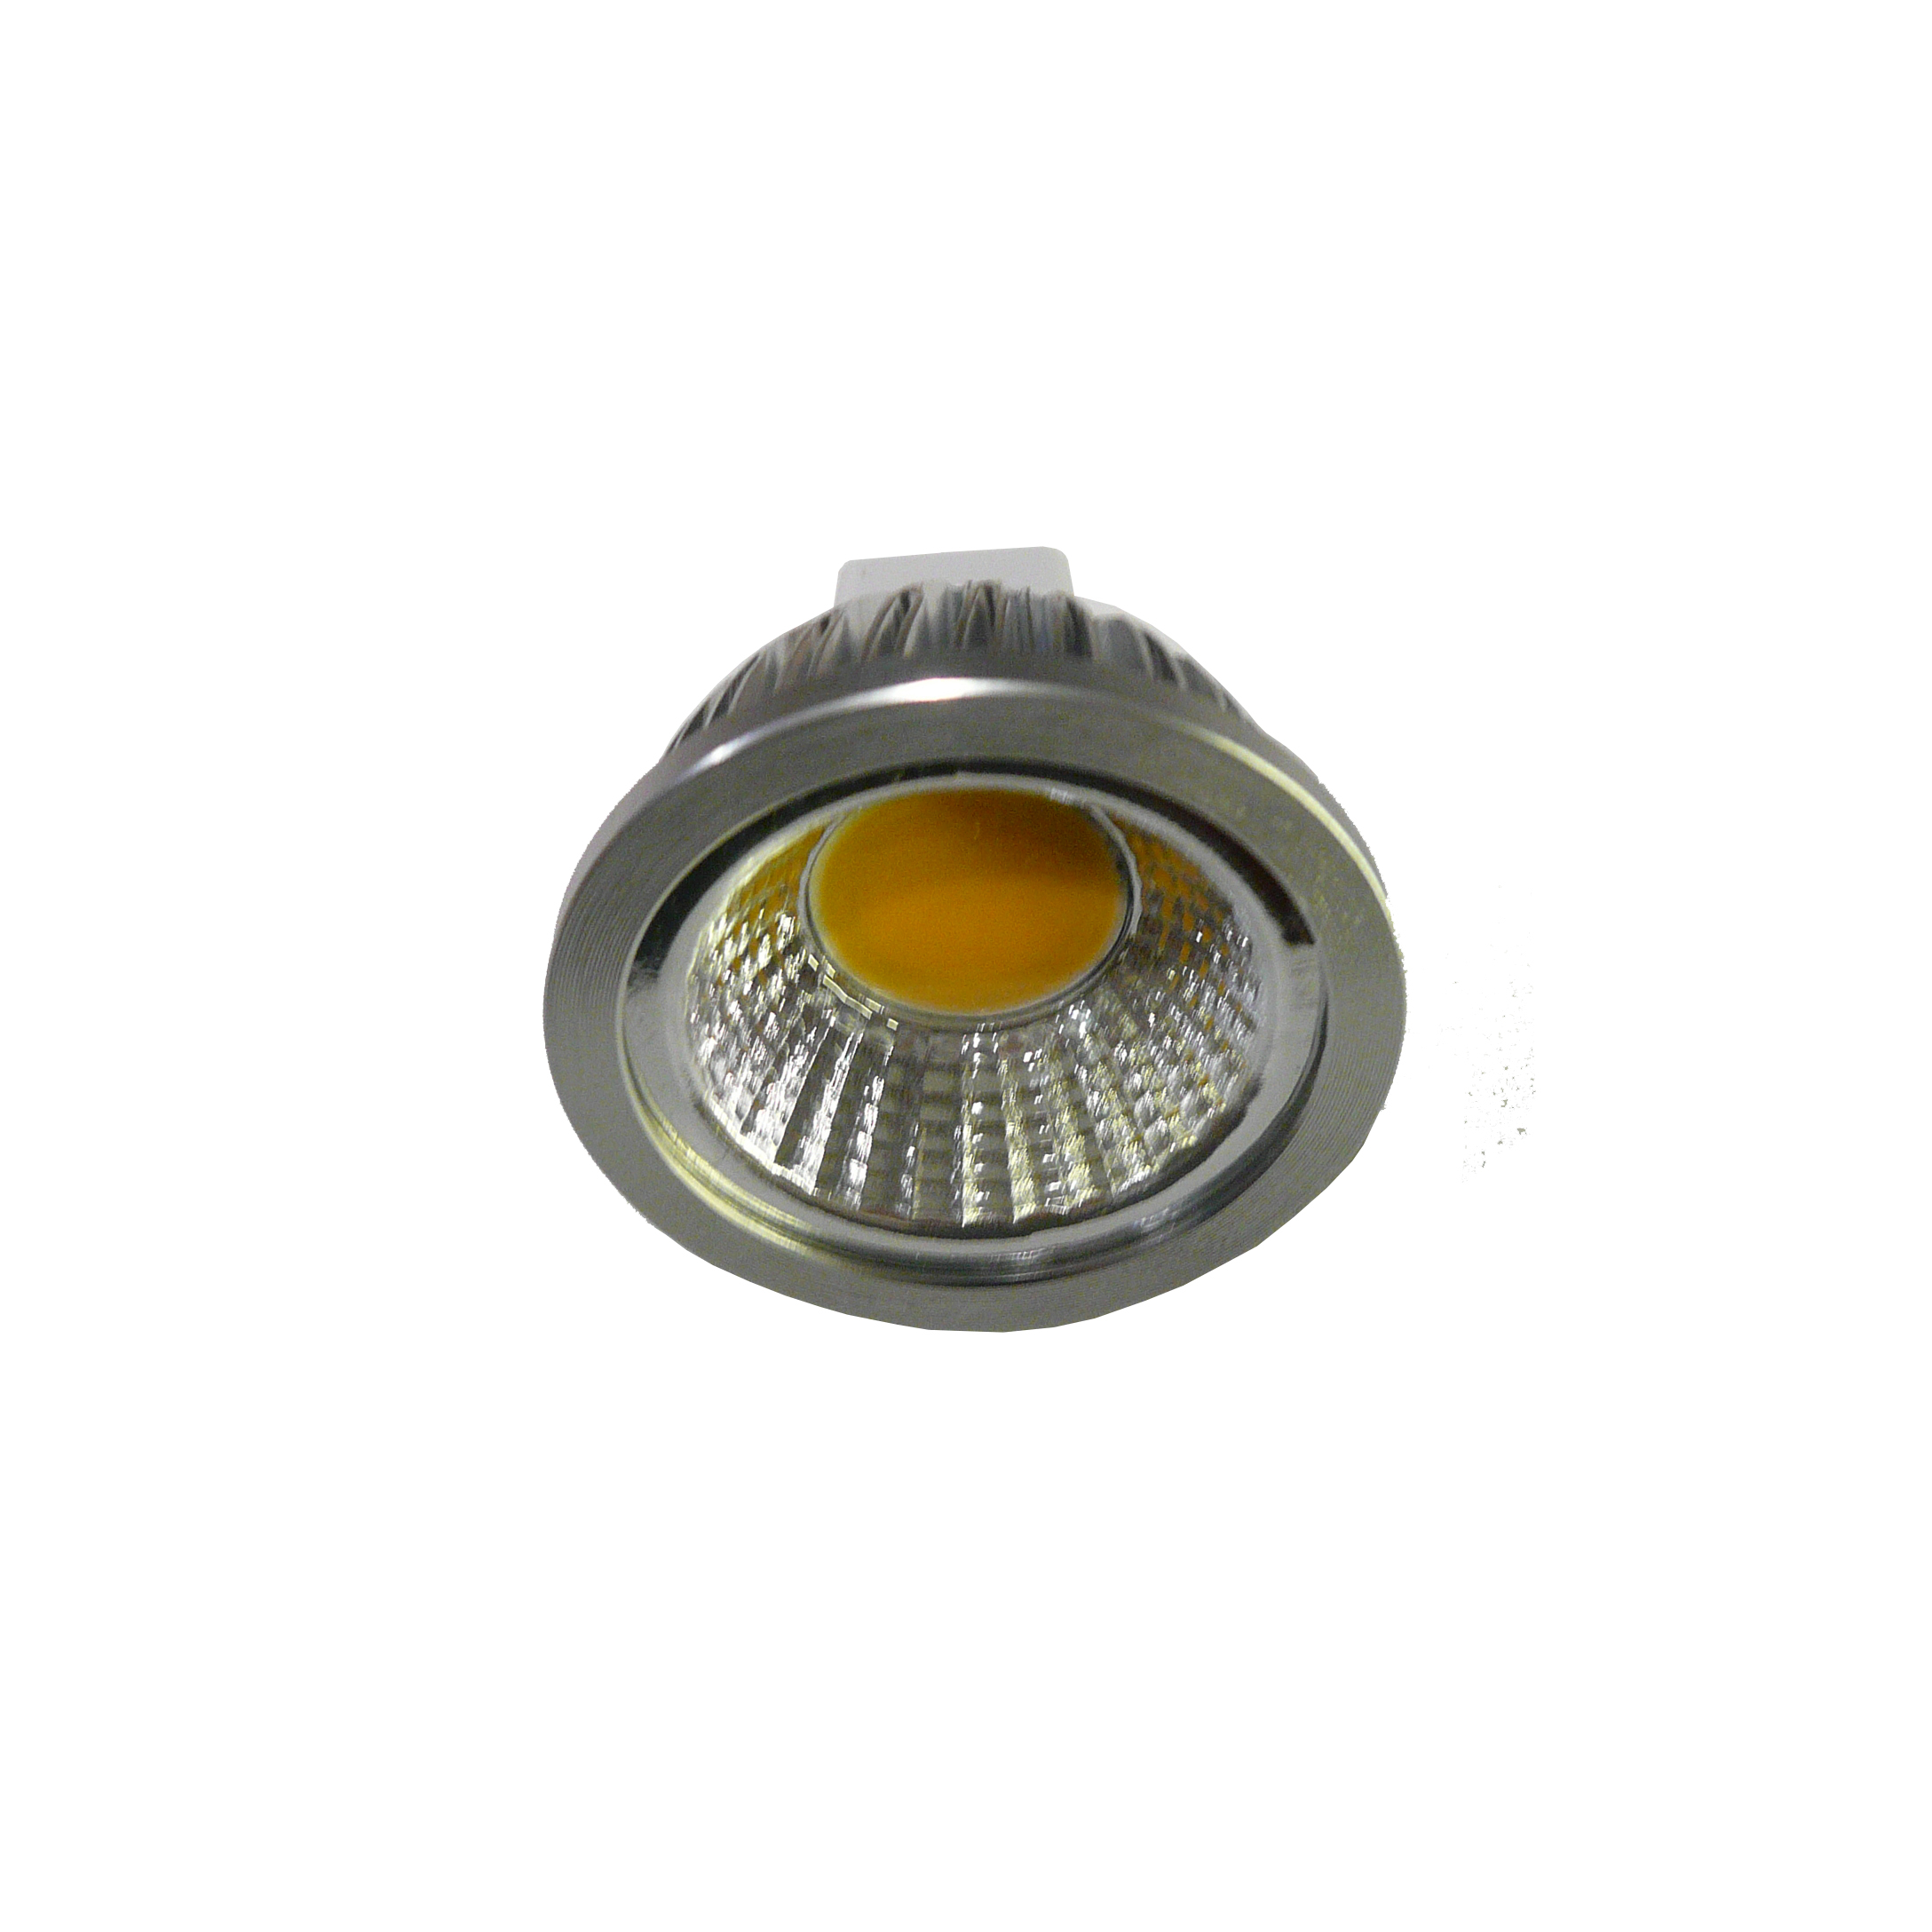 Led 5 Watt G4 Gu4 Led Lamp 12v 1 5 Watt Extra Warm Wit